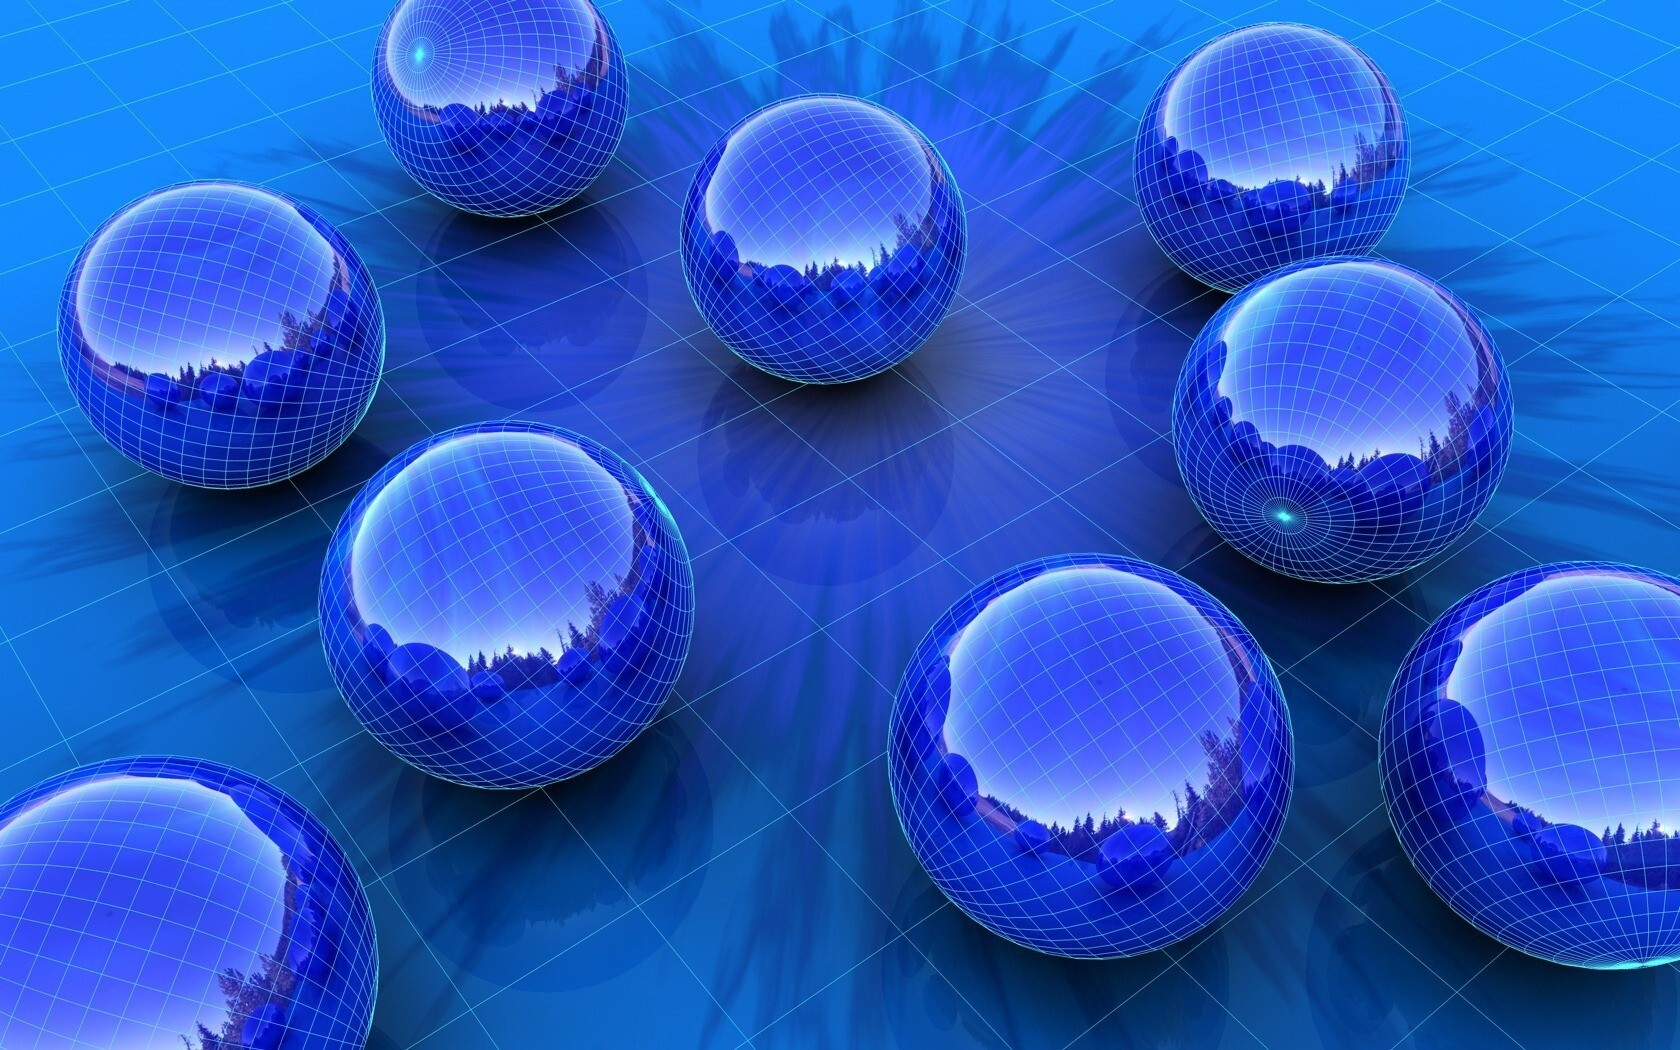 3d blue balls hd wallpaper hd wallpapers for 3de wallpaper